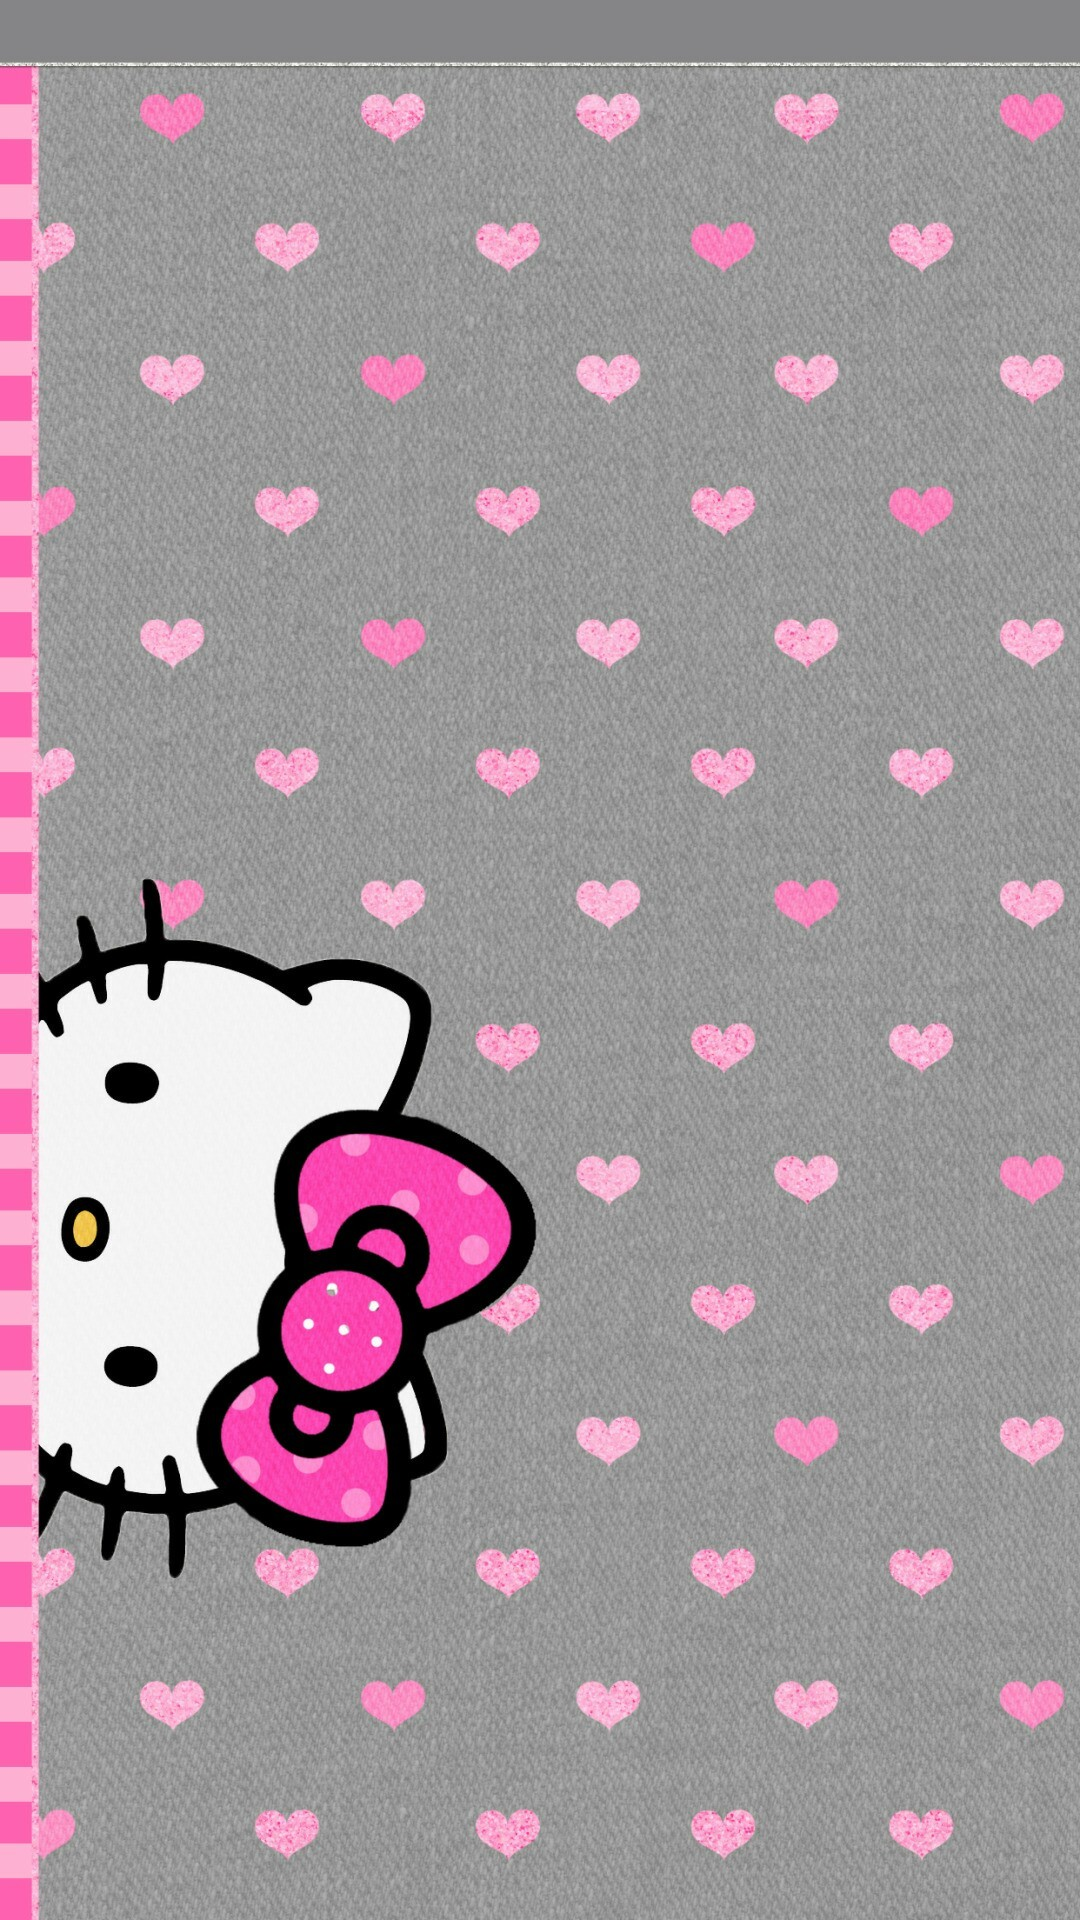 Best Wallpaper Hello Kitty Silver - 1060568-vertical-pink-hello-kitty-background-1080x1920-high-resolution  Perfect Image Reference_58533.jpg